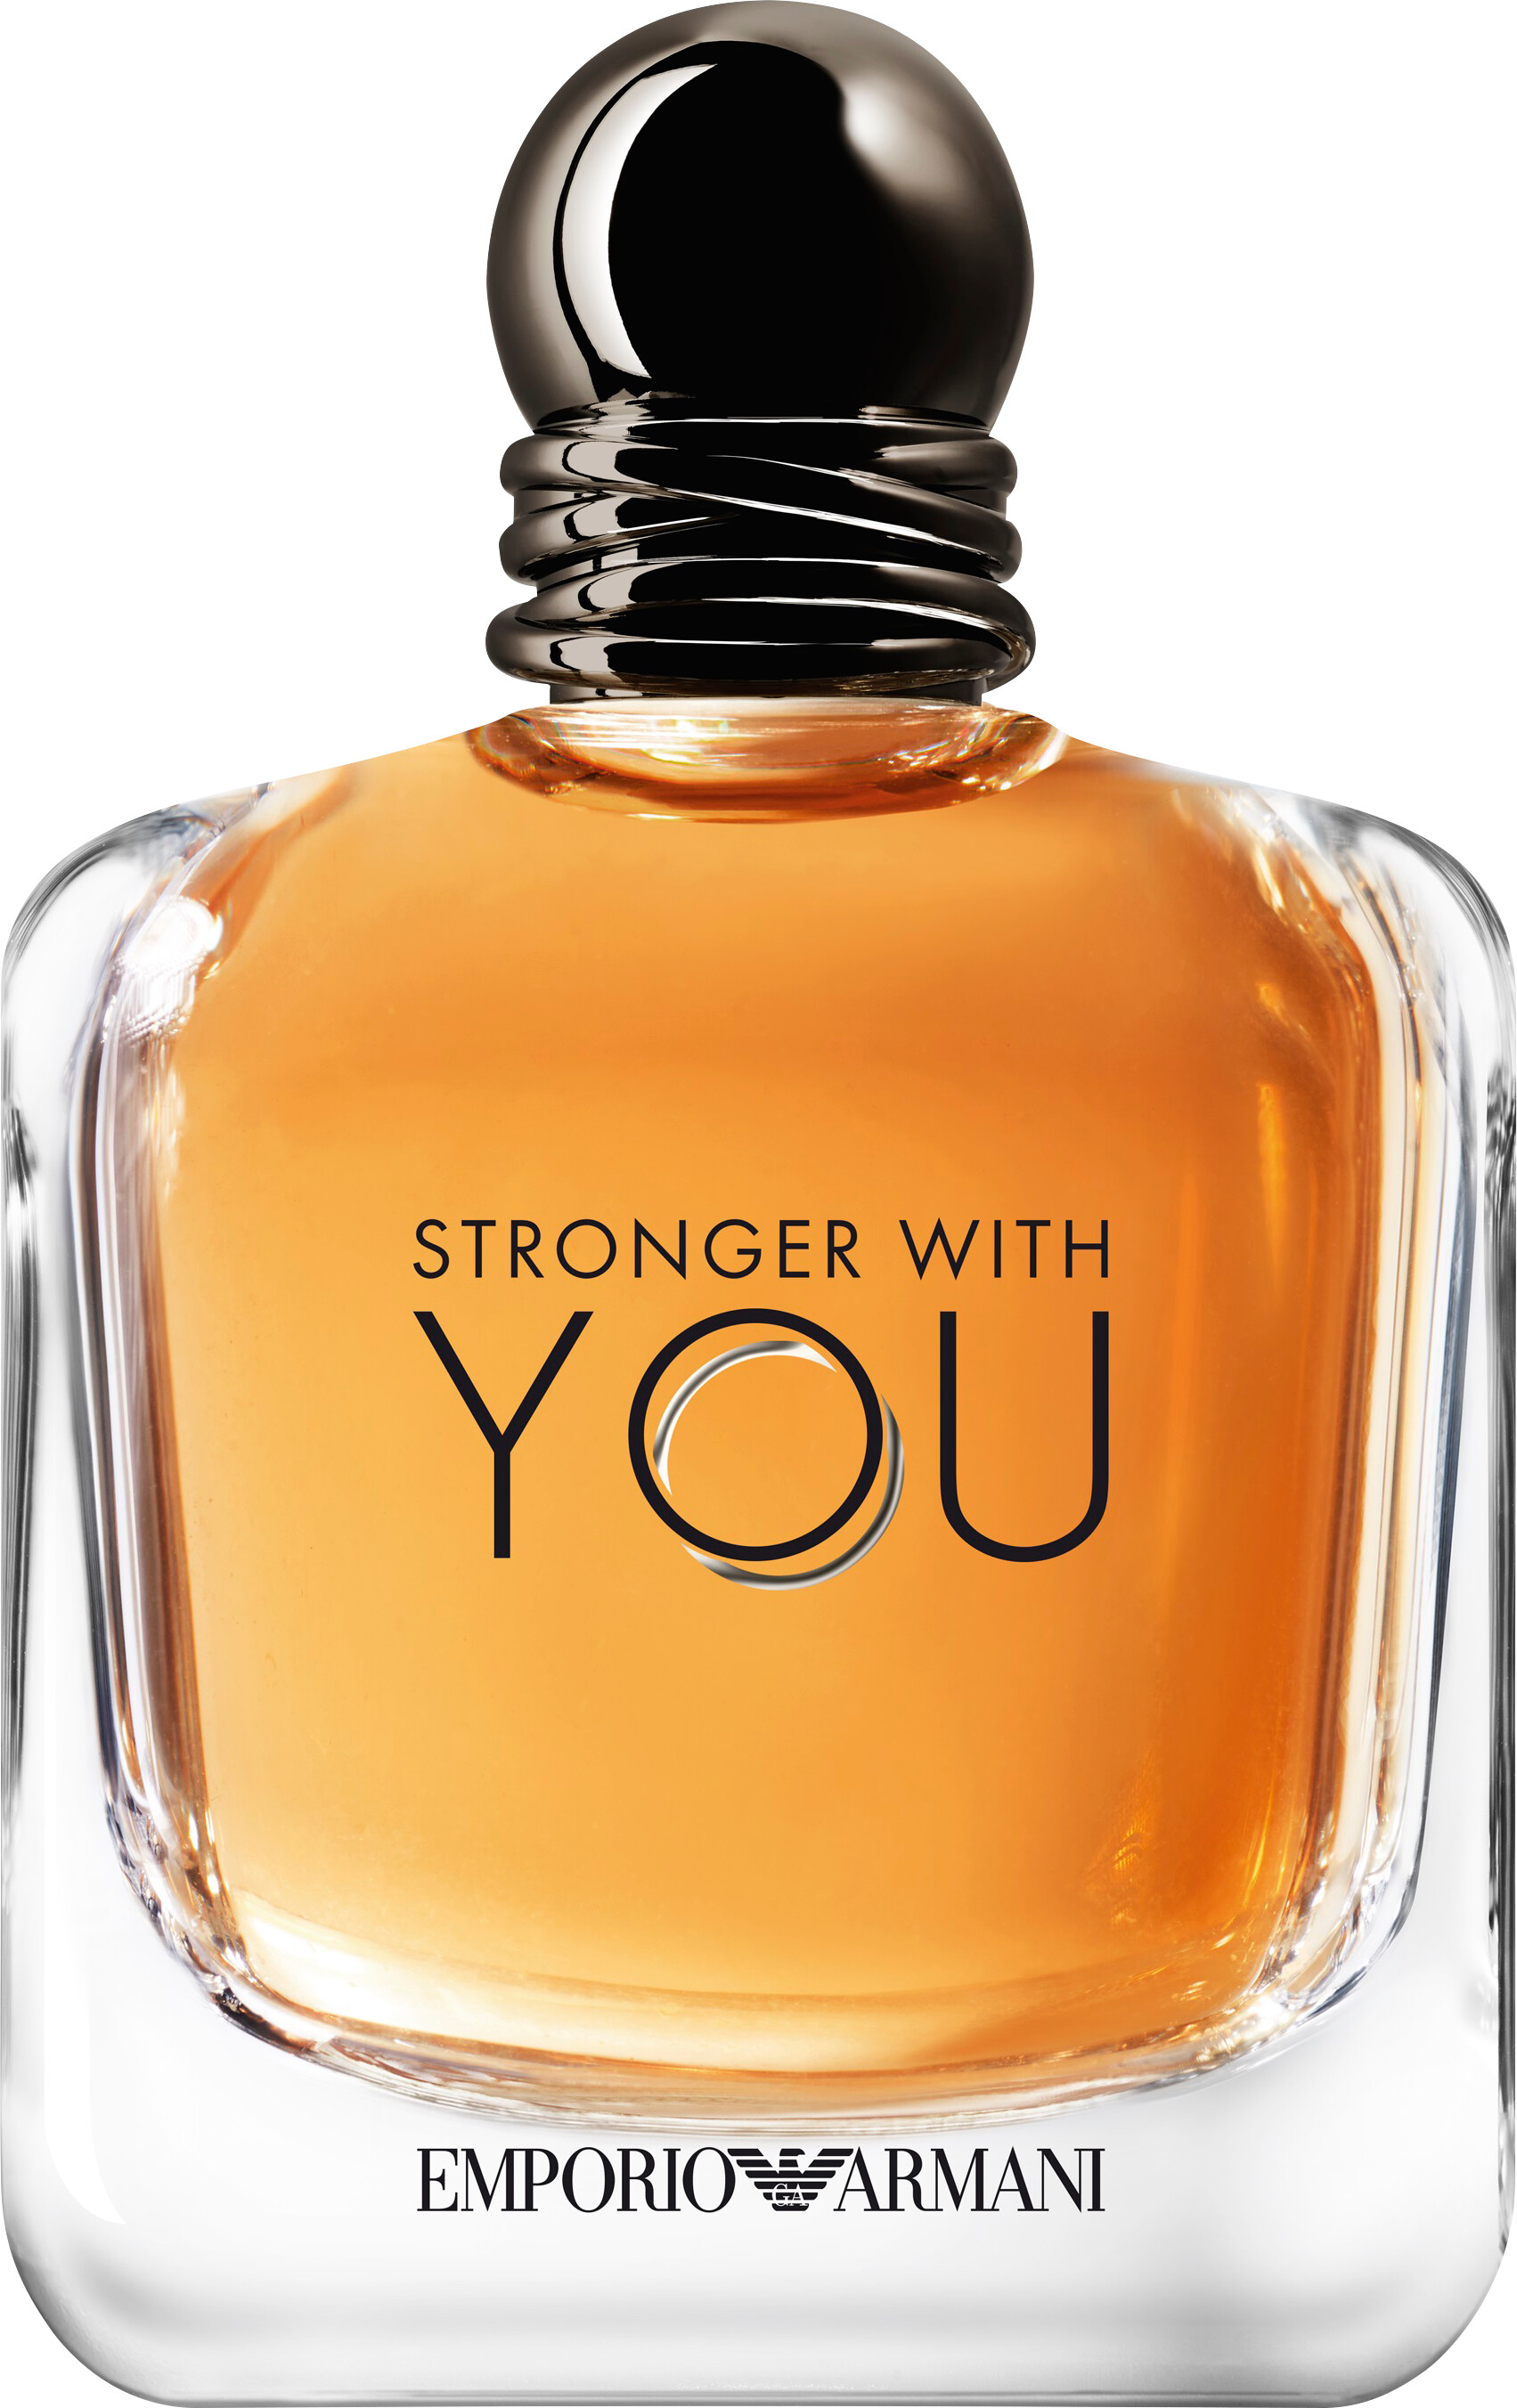 81f62c336068 ... Giorgio Armani Emporio Armani Stronger With You Eau de Toilette Spray  150ml